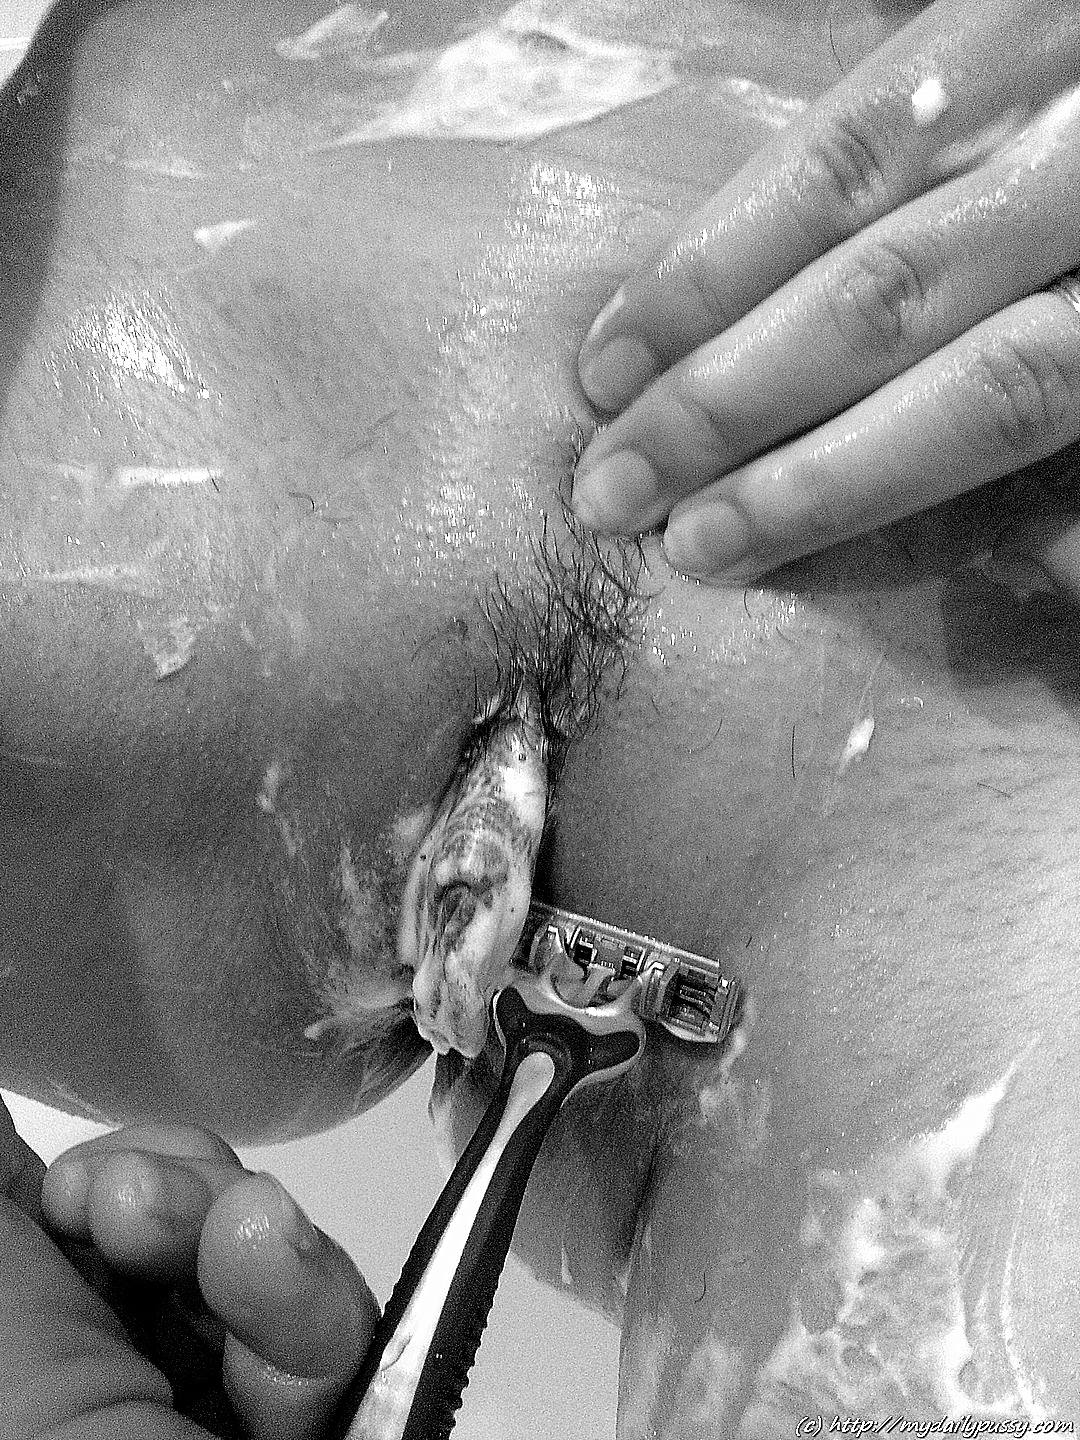 Shaving-pussy-in-the-shower-foam-and-razor-blade__20140106_011954.jpg